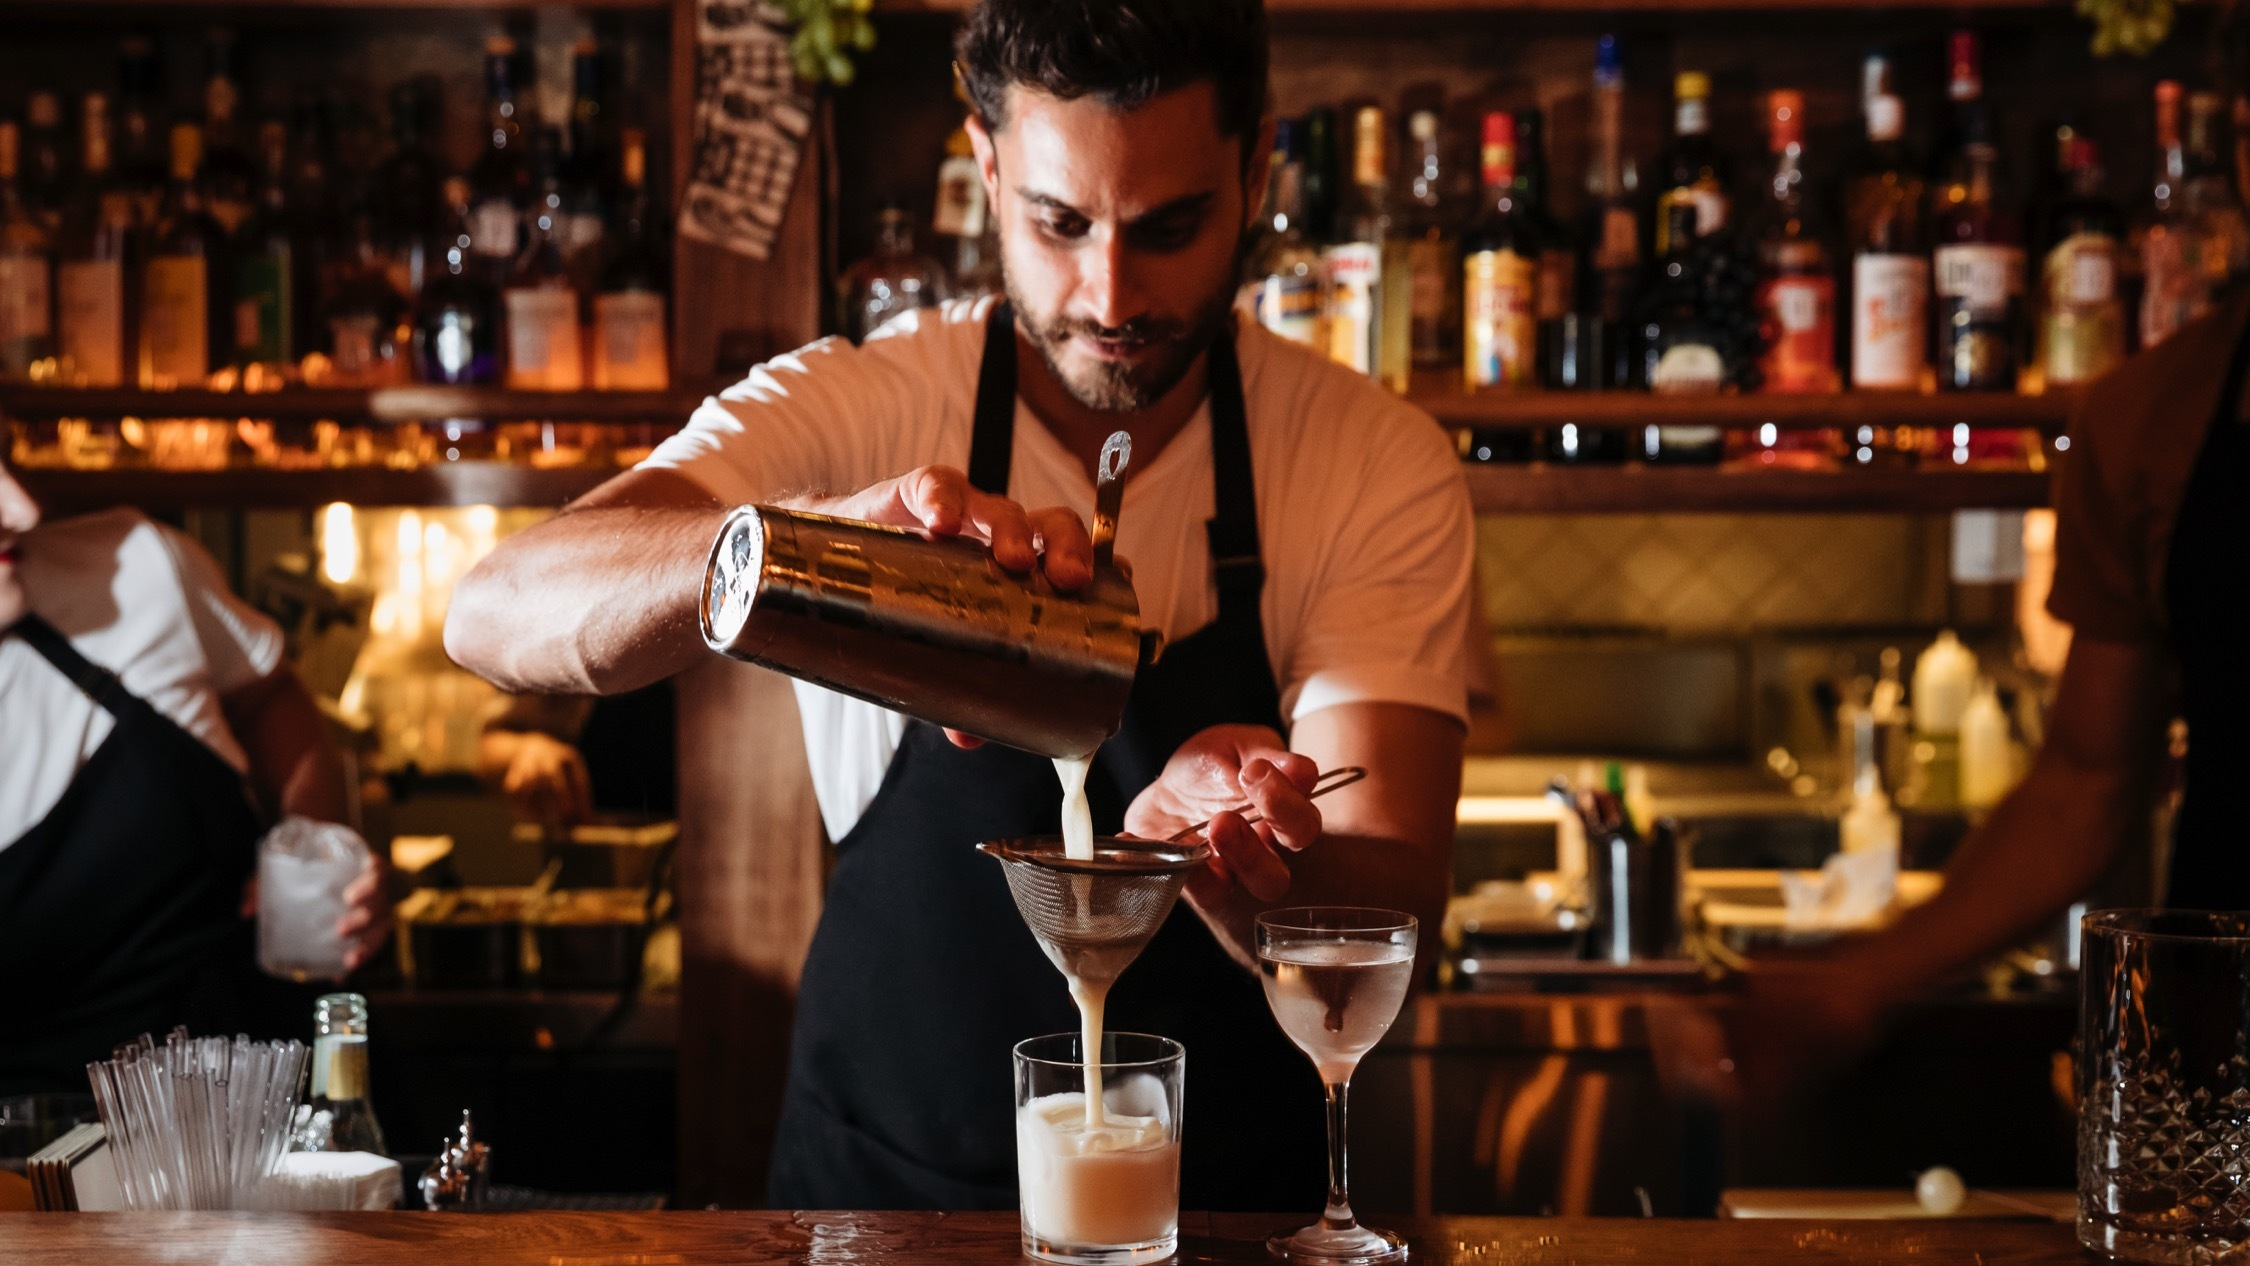 Person behind the bar making cocktails at Alberto's Lounge